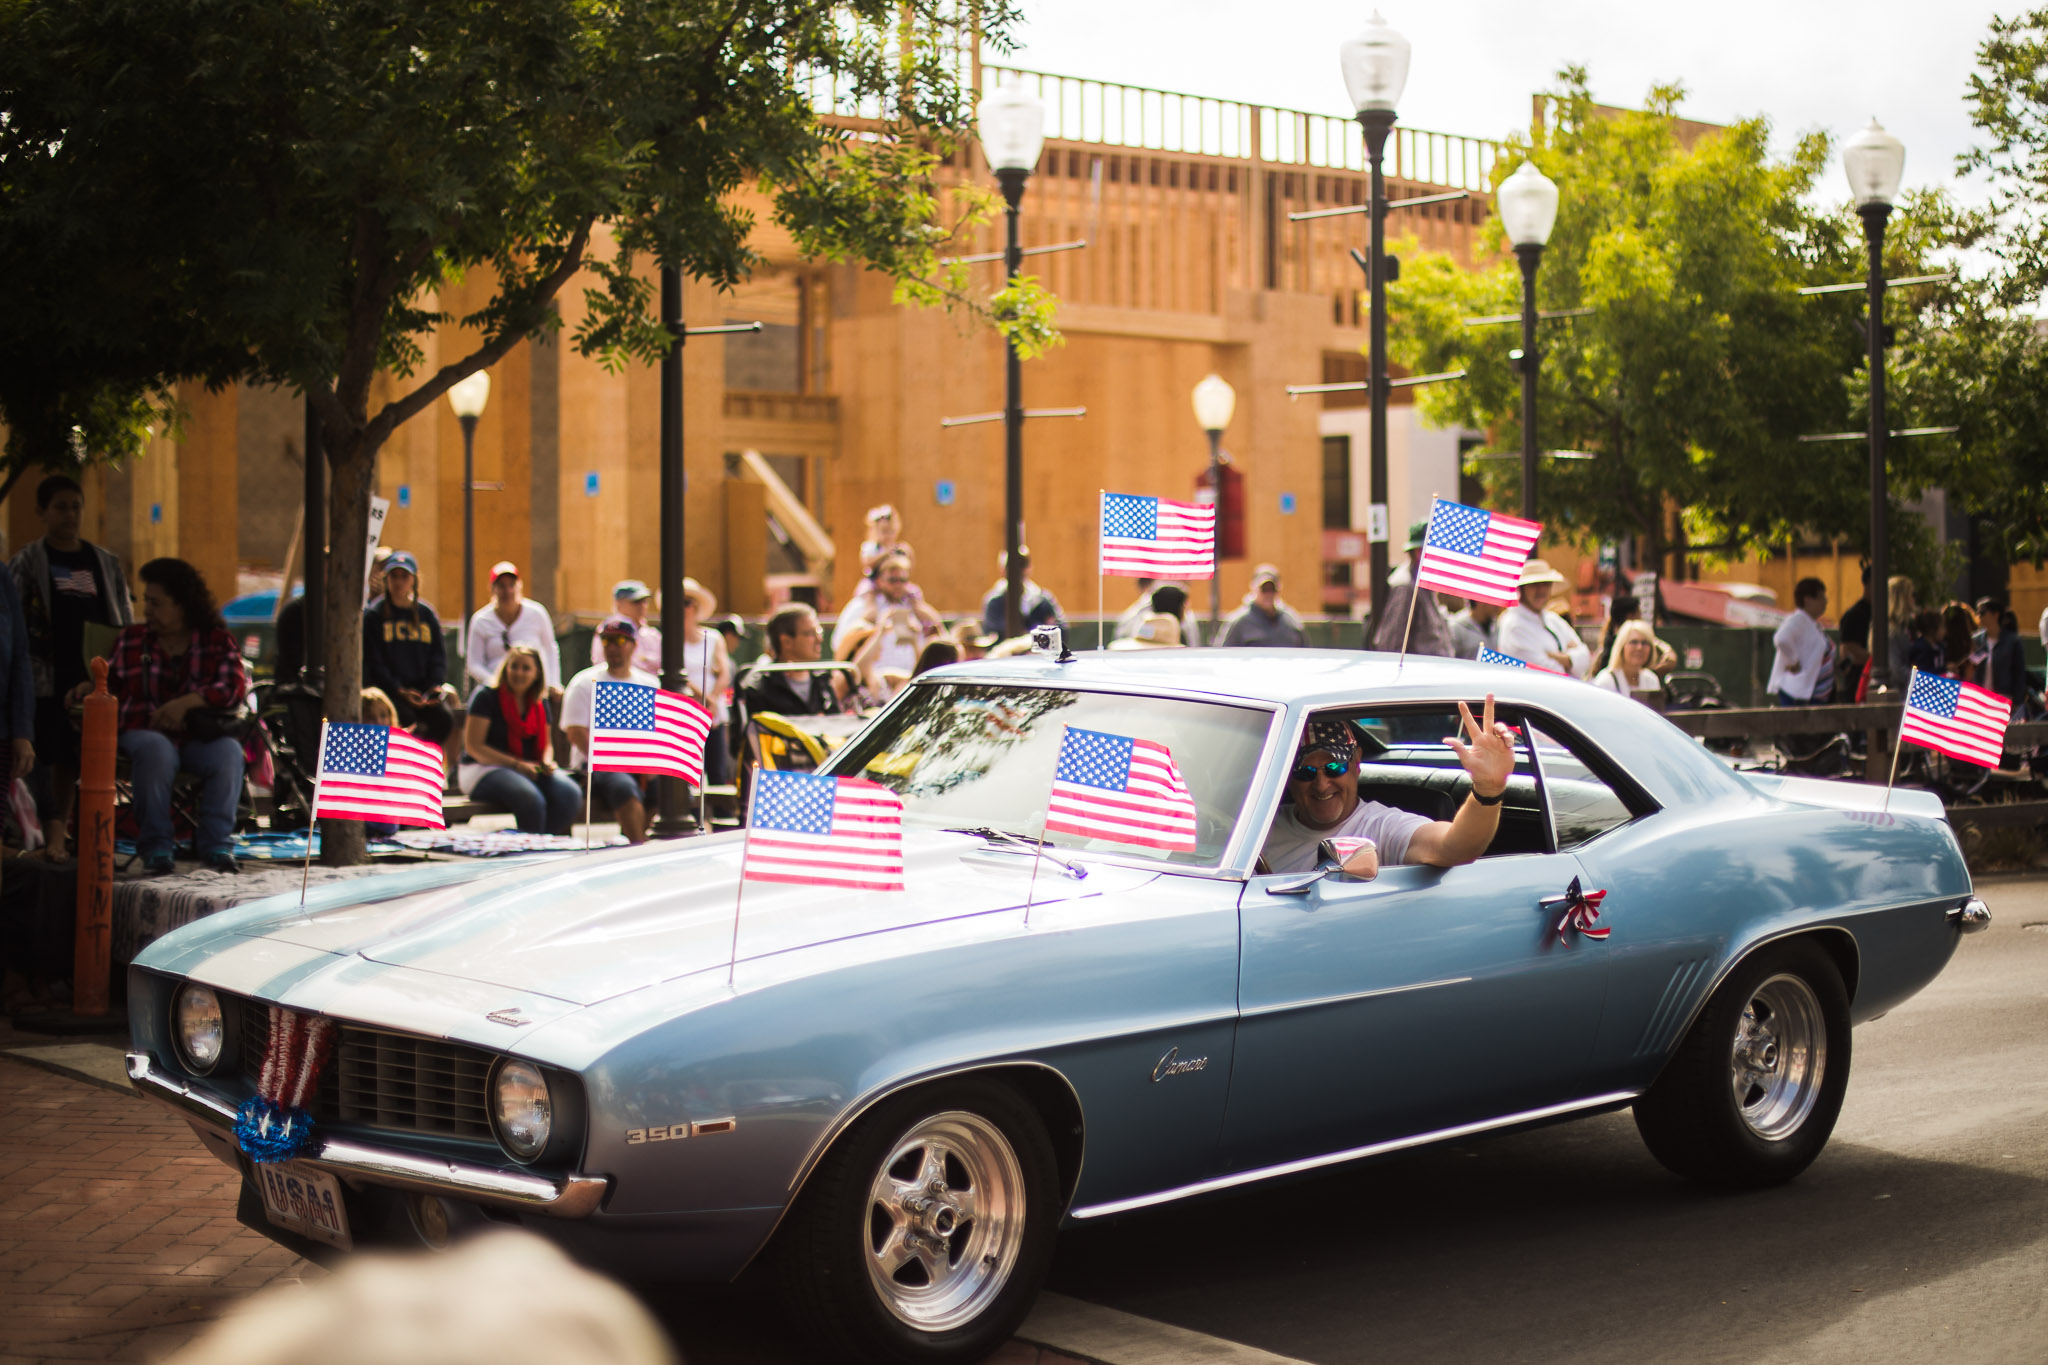 Archer_Inspired_Photography_Morgan_Hill_California_4th_of_july_parade-18.jpg